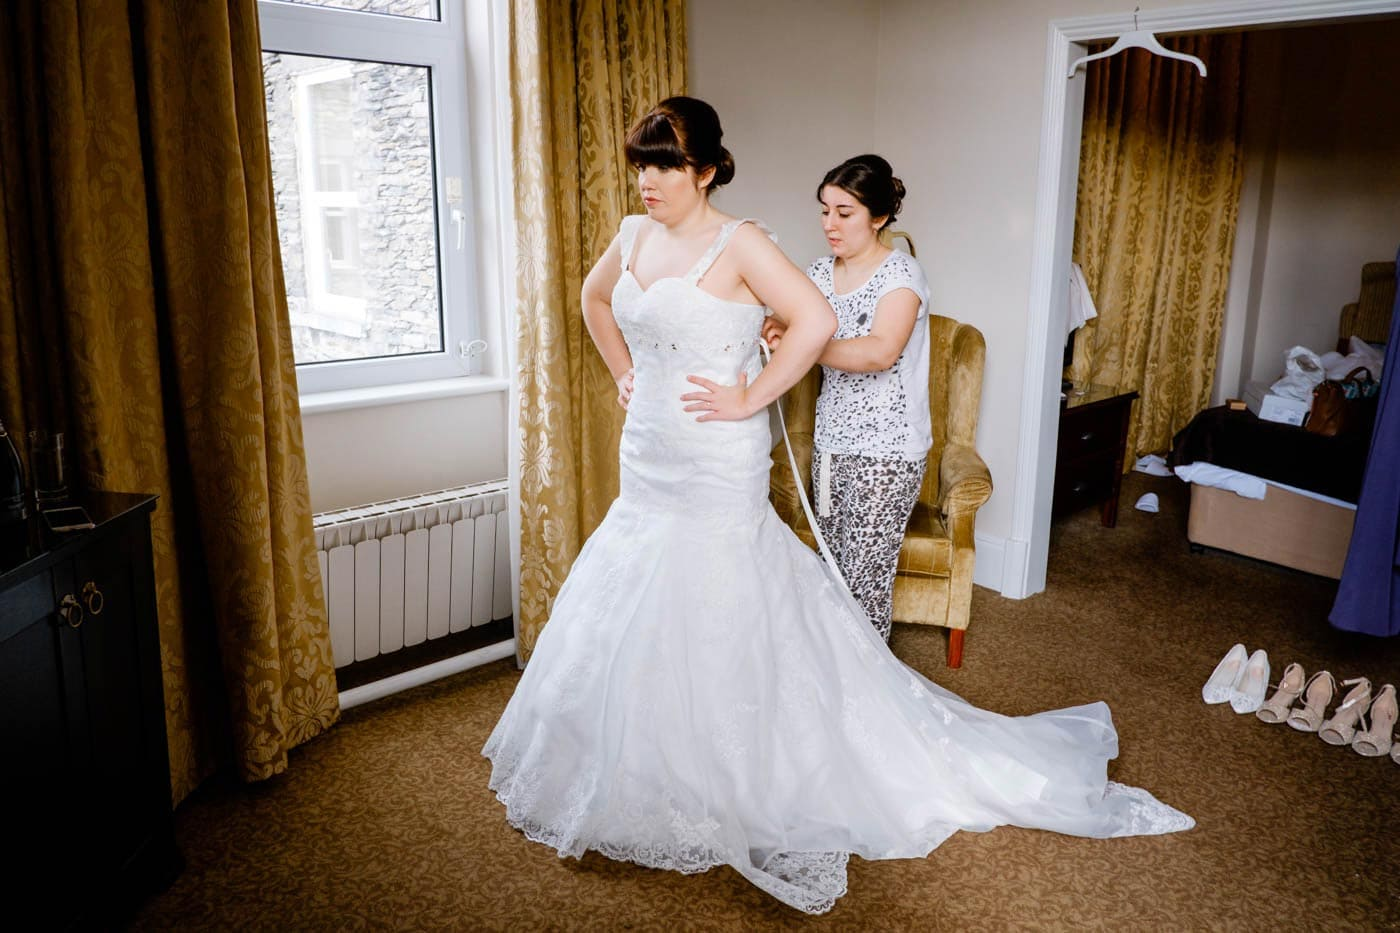 Bride helped my maid with wedding dress